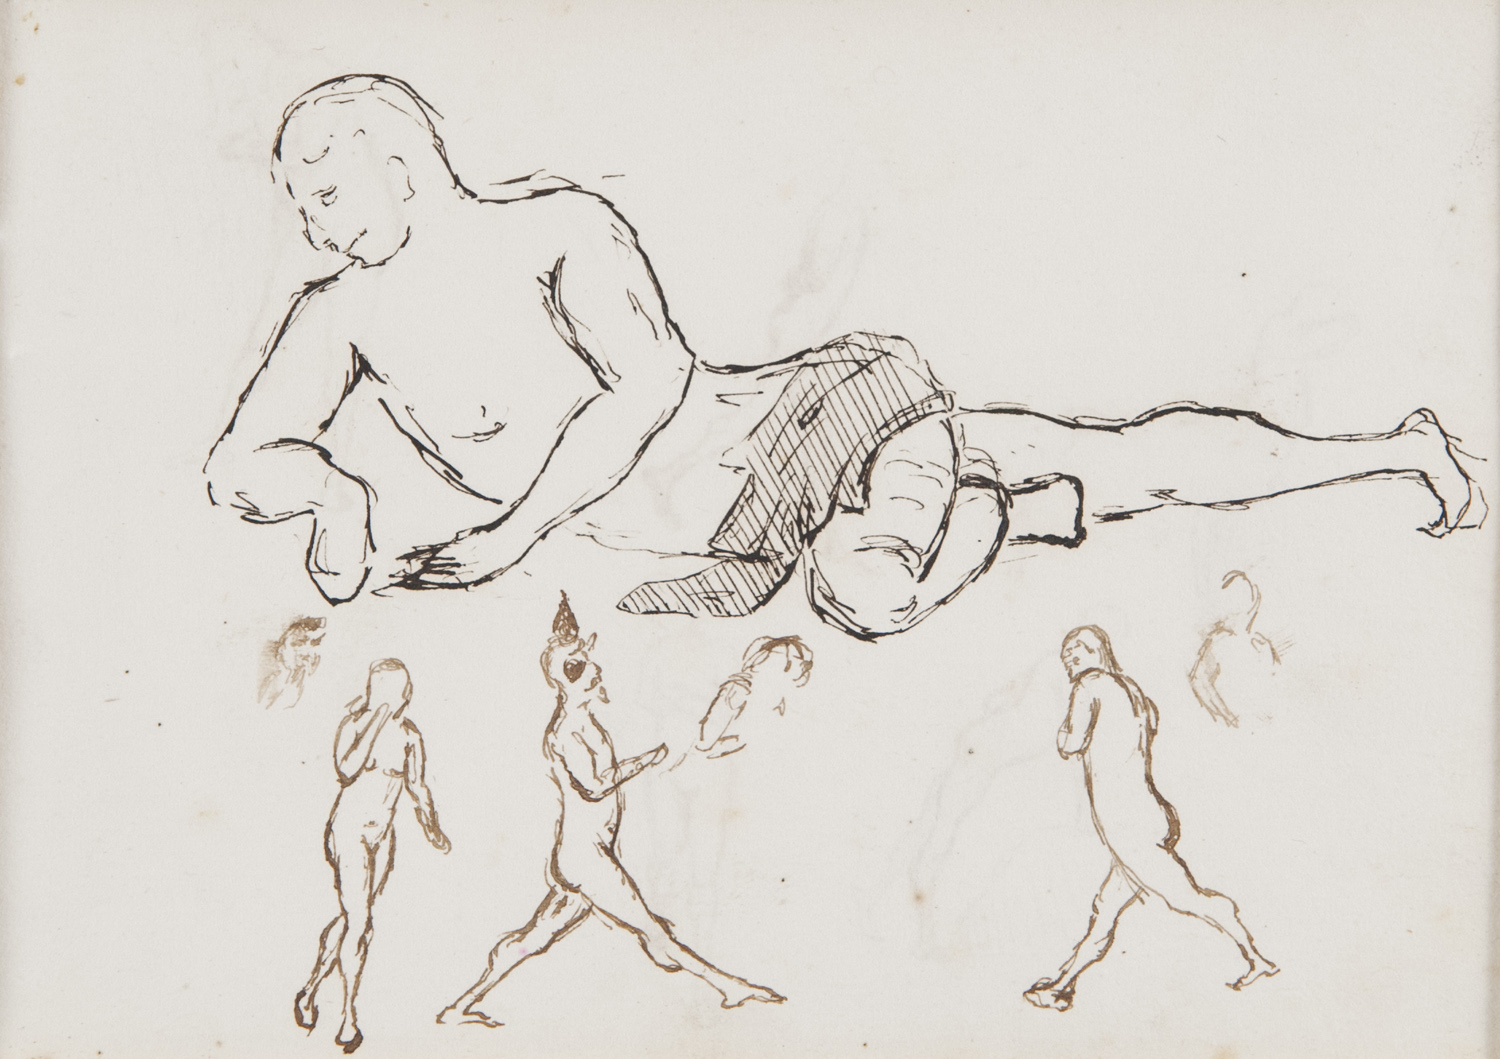 ITALIAN INK DRAWING EARLY 20TH CENTURY